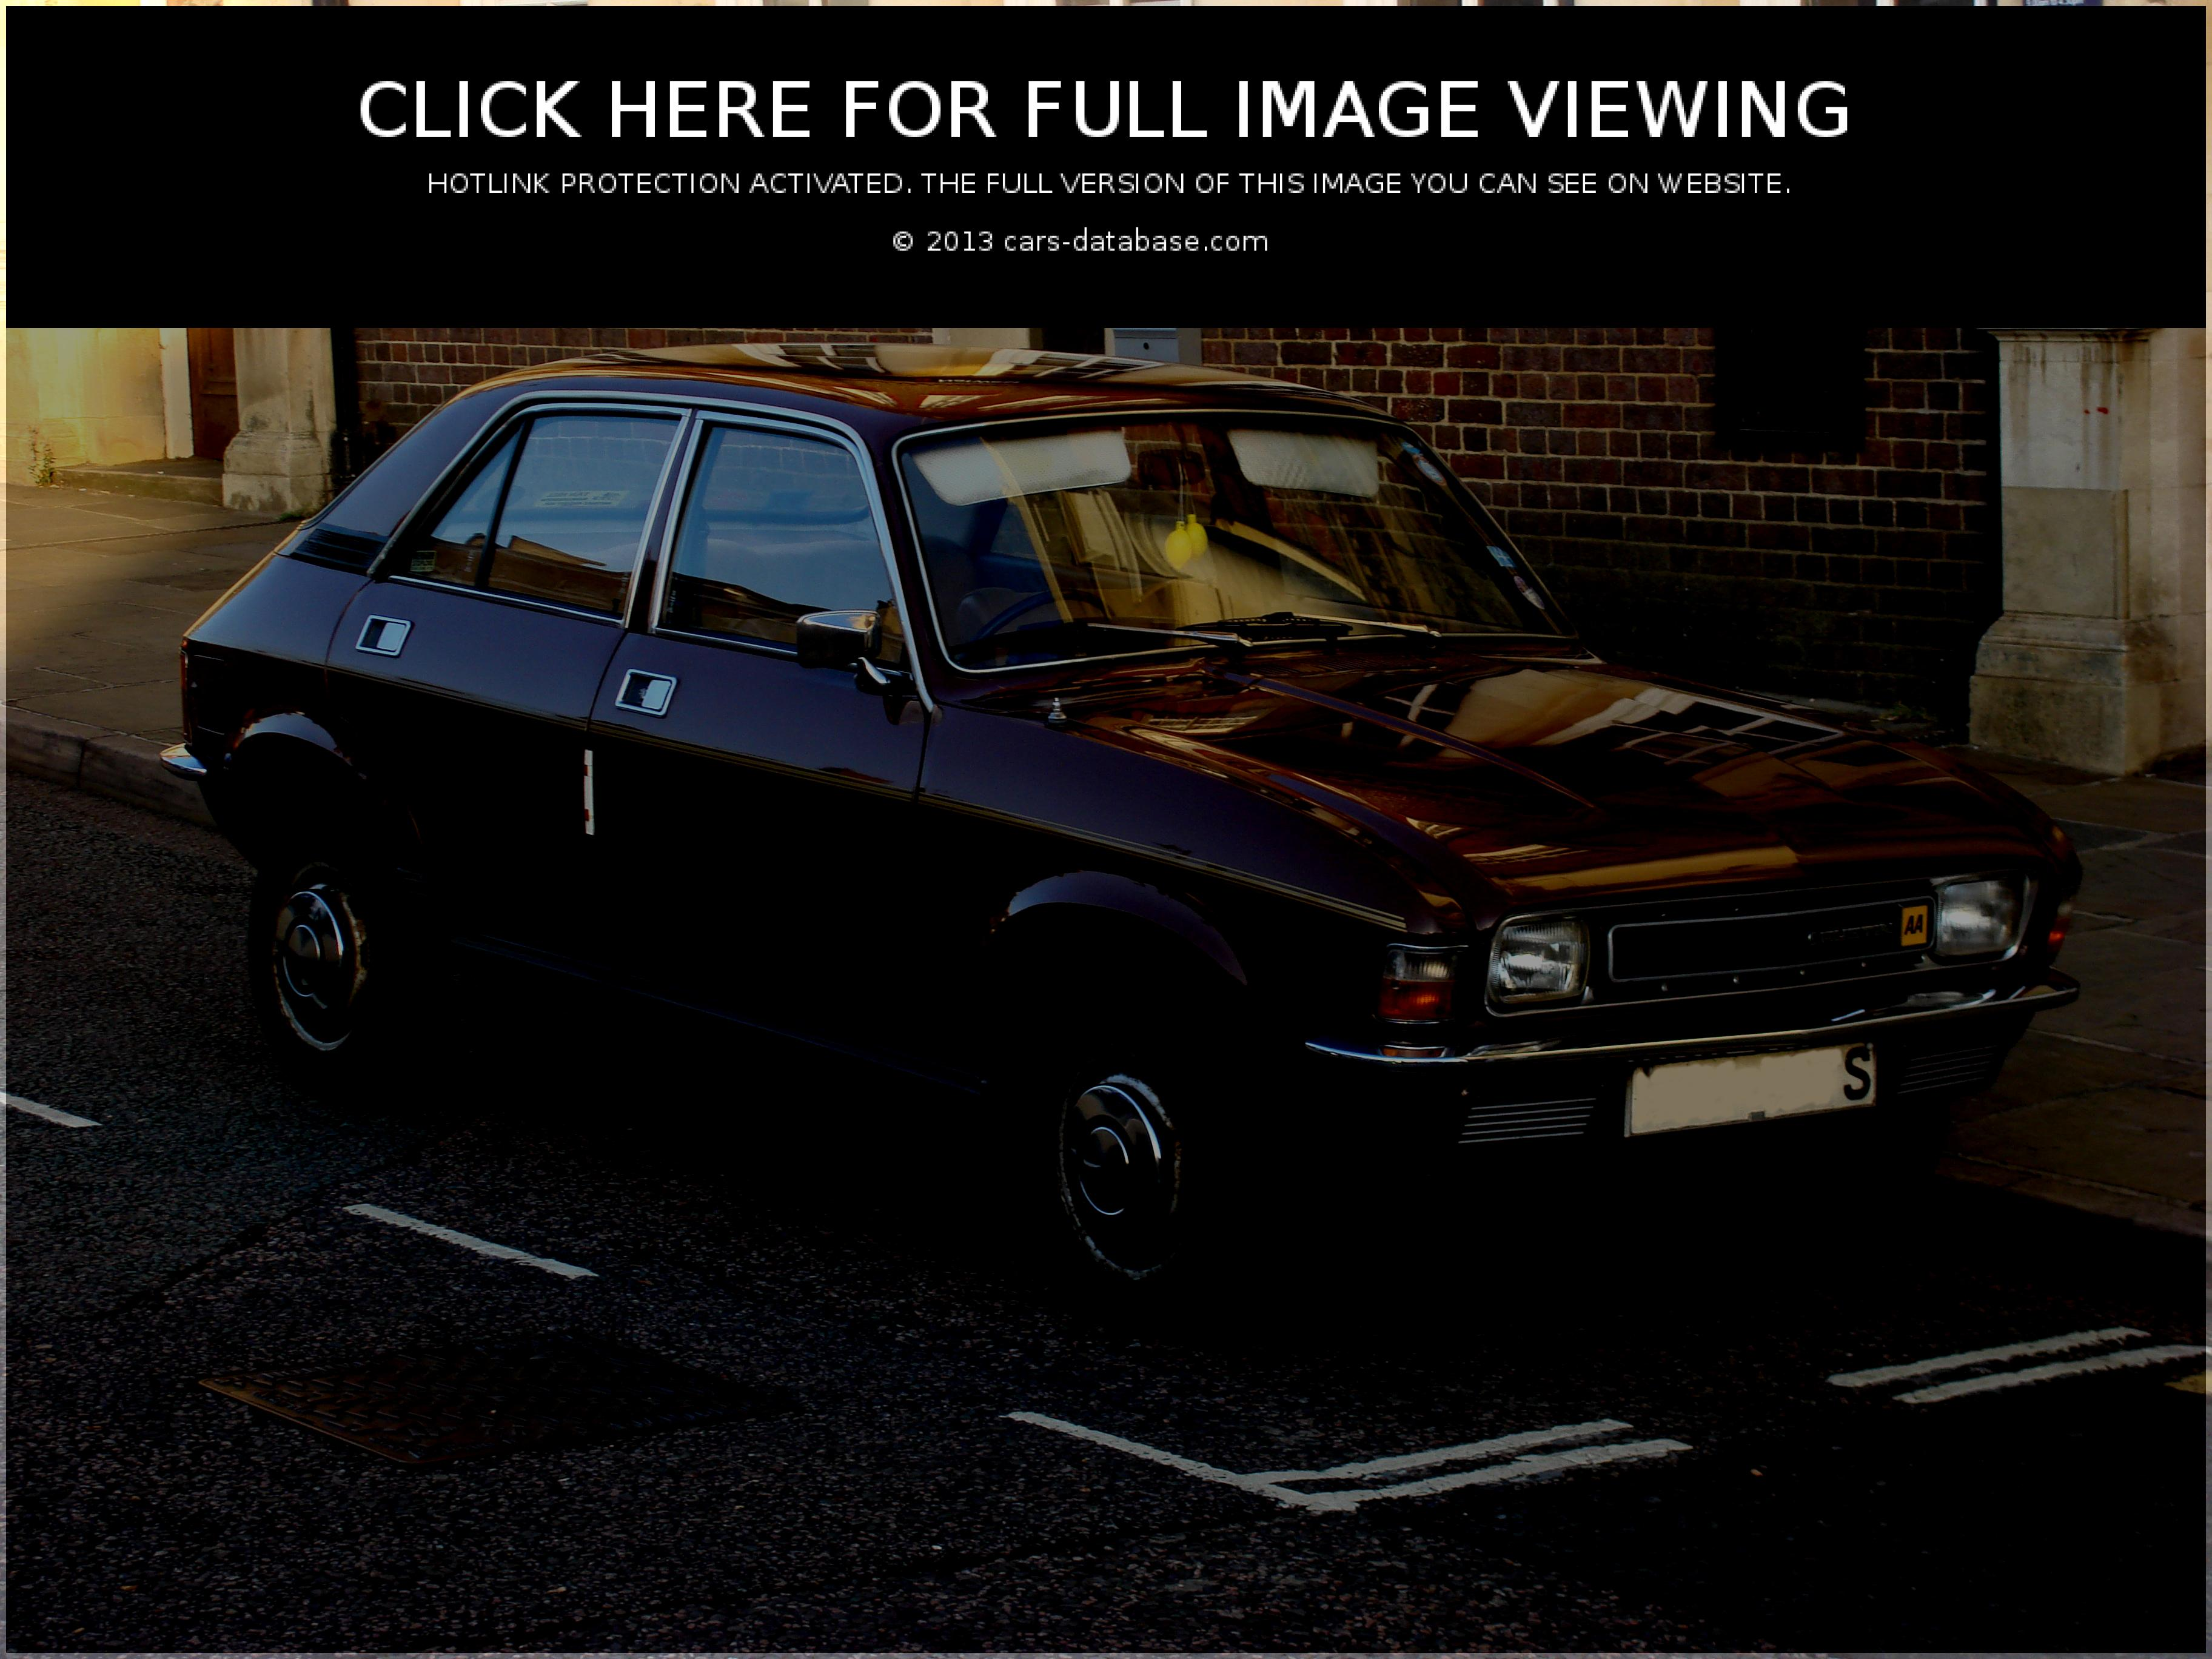 Austin Allegro: Information about model, images gallery and ...